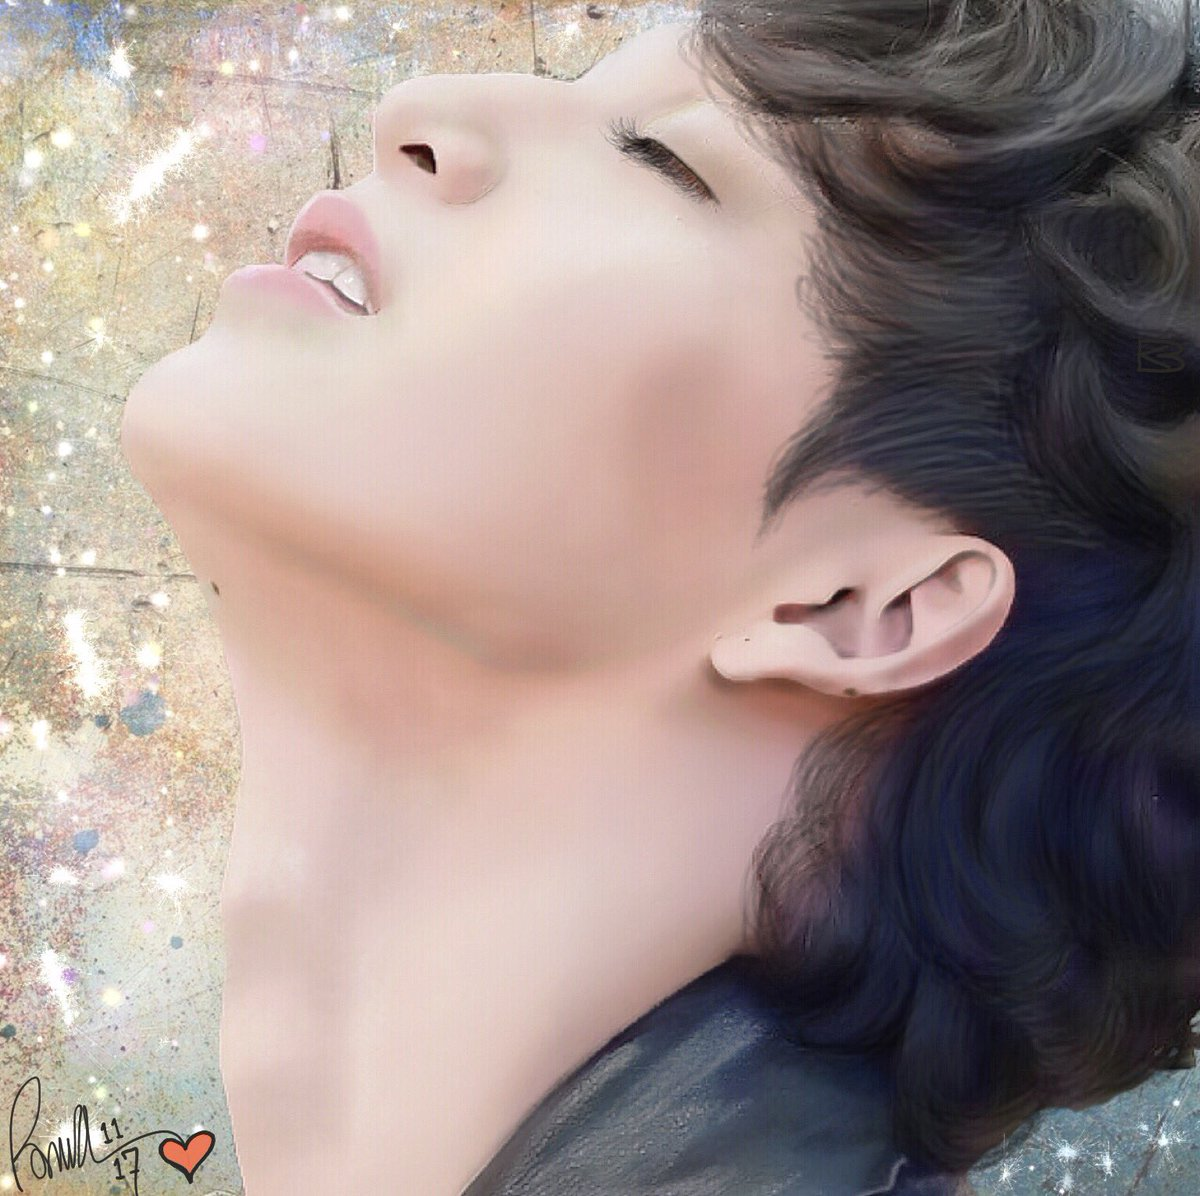 As usual I went in search of inspiration. My need to #draw is constant, it quiets my mind so I can meditate. #JTforBbasjtr provided me a goldmine. Thank you for this #AMAZING look at #Bbas.  #drawing #highlight #contour #shadow #art #artist #artwork #2Moonstheseries #love #Bas<br>http://pic.twitter.com/x45u1CyXEx